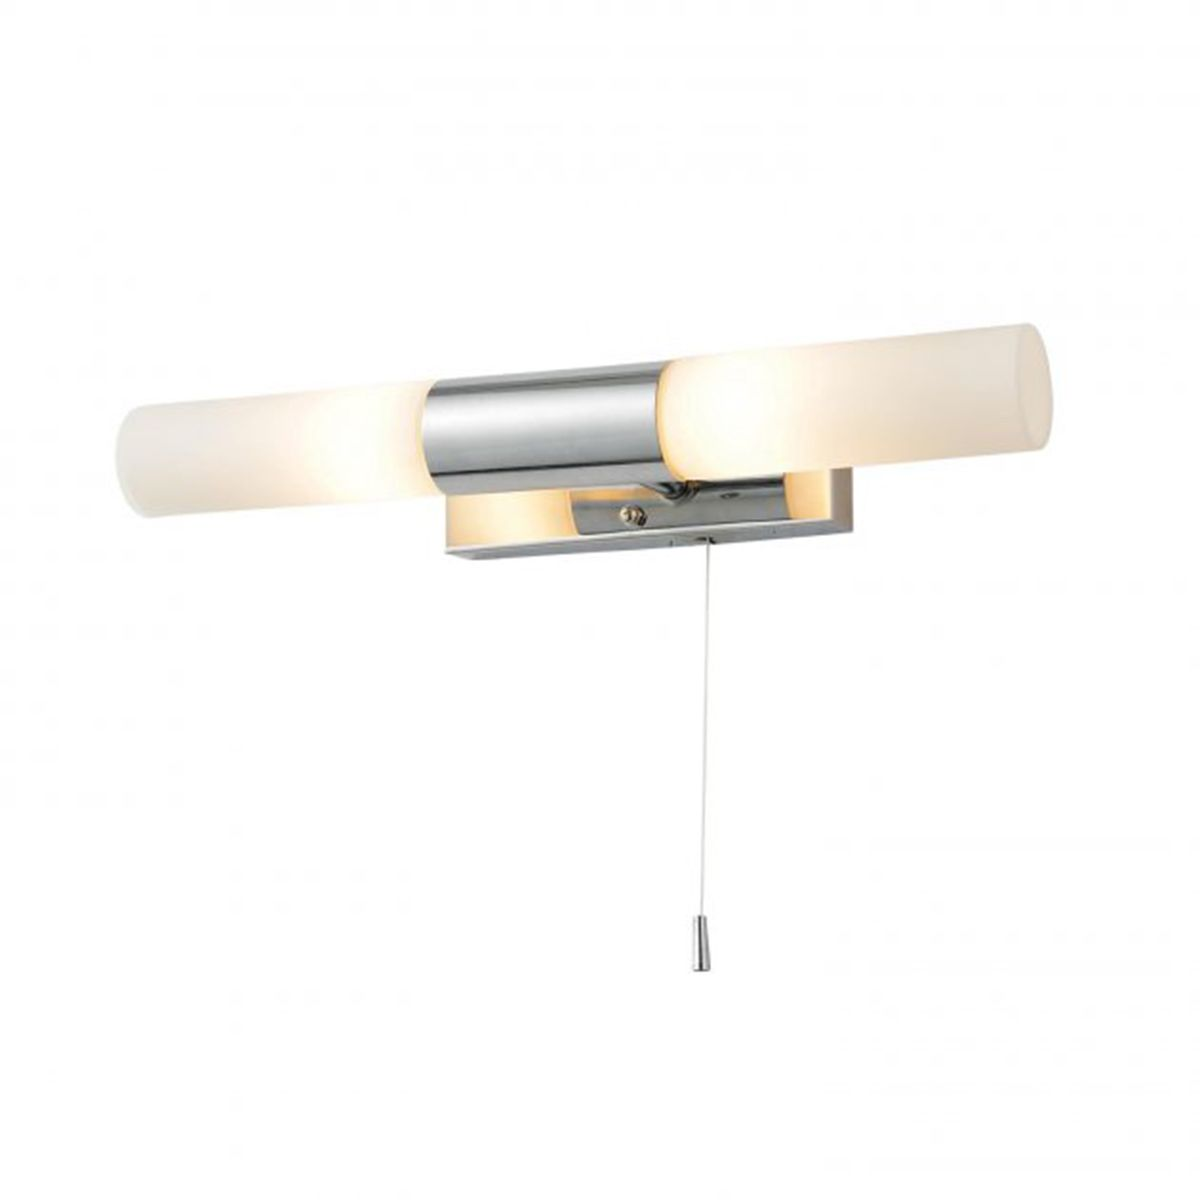 Frontline Chrome Beam Wall Light with Pull Cord 360mm